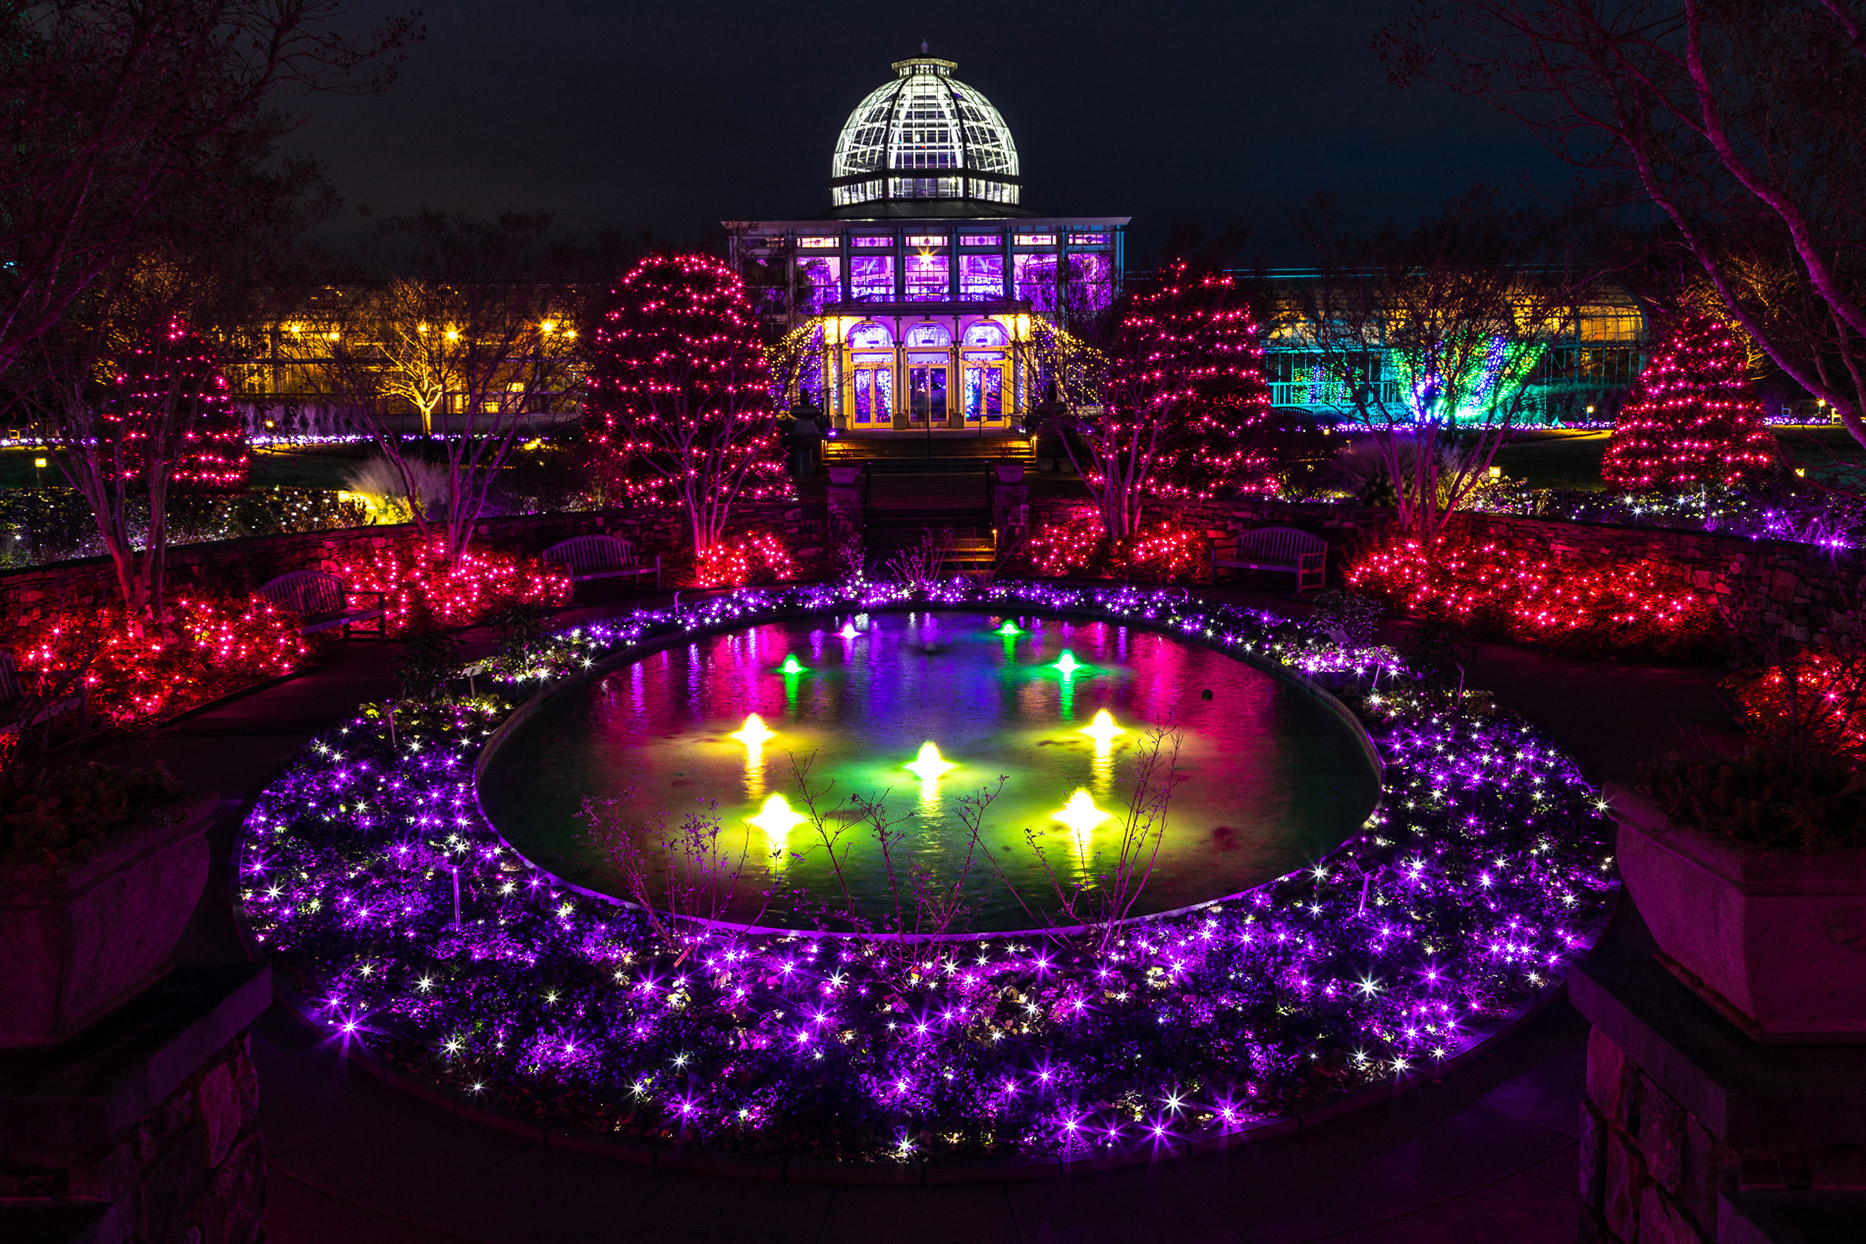 Conservatory and fountain at Lewis Ginter Botanical Garden covered with holiday lights